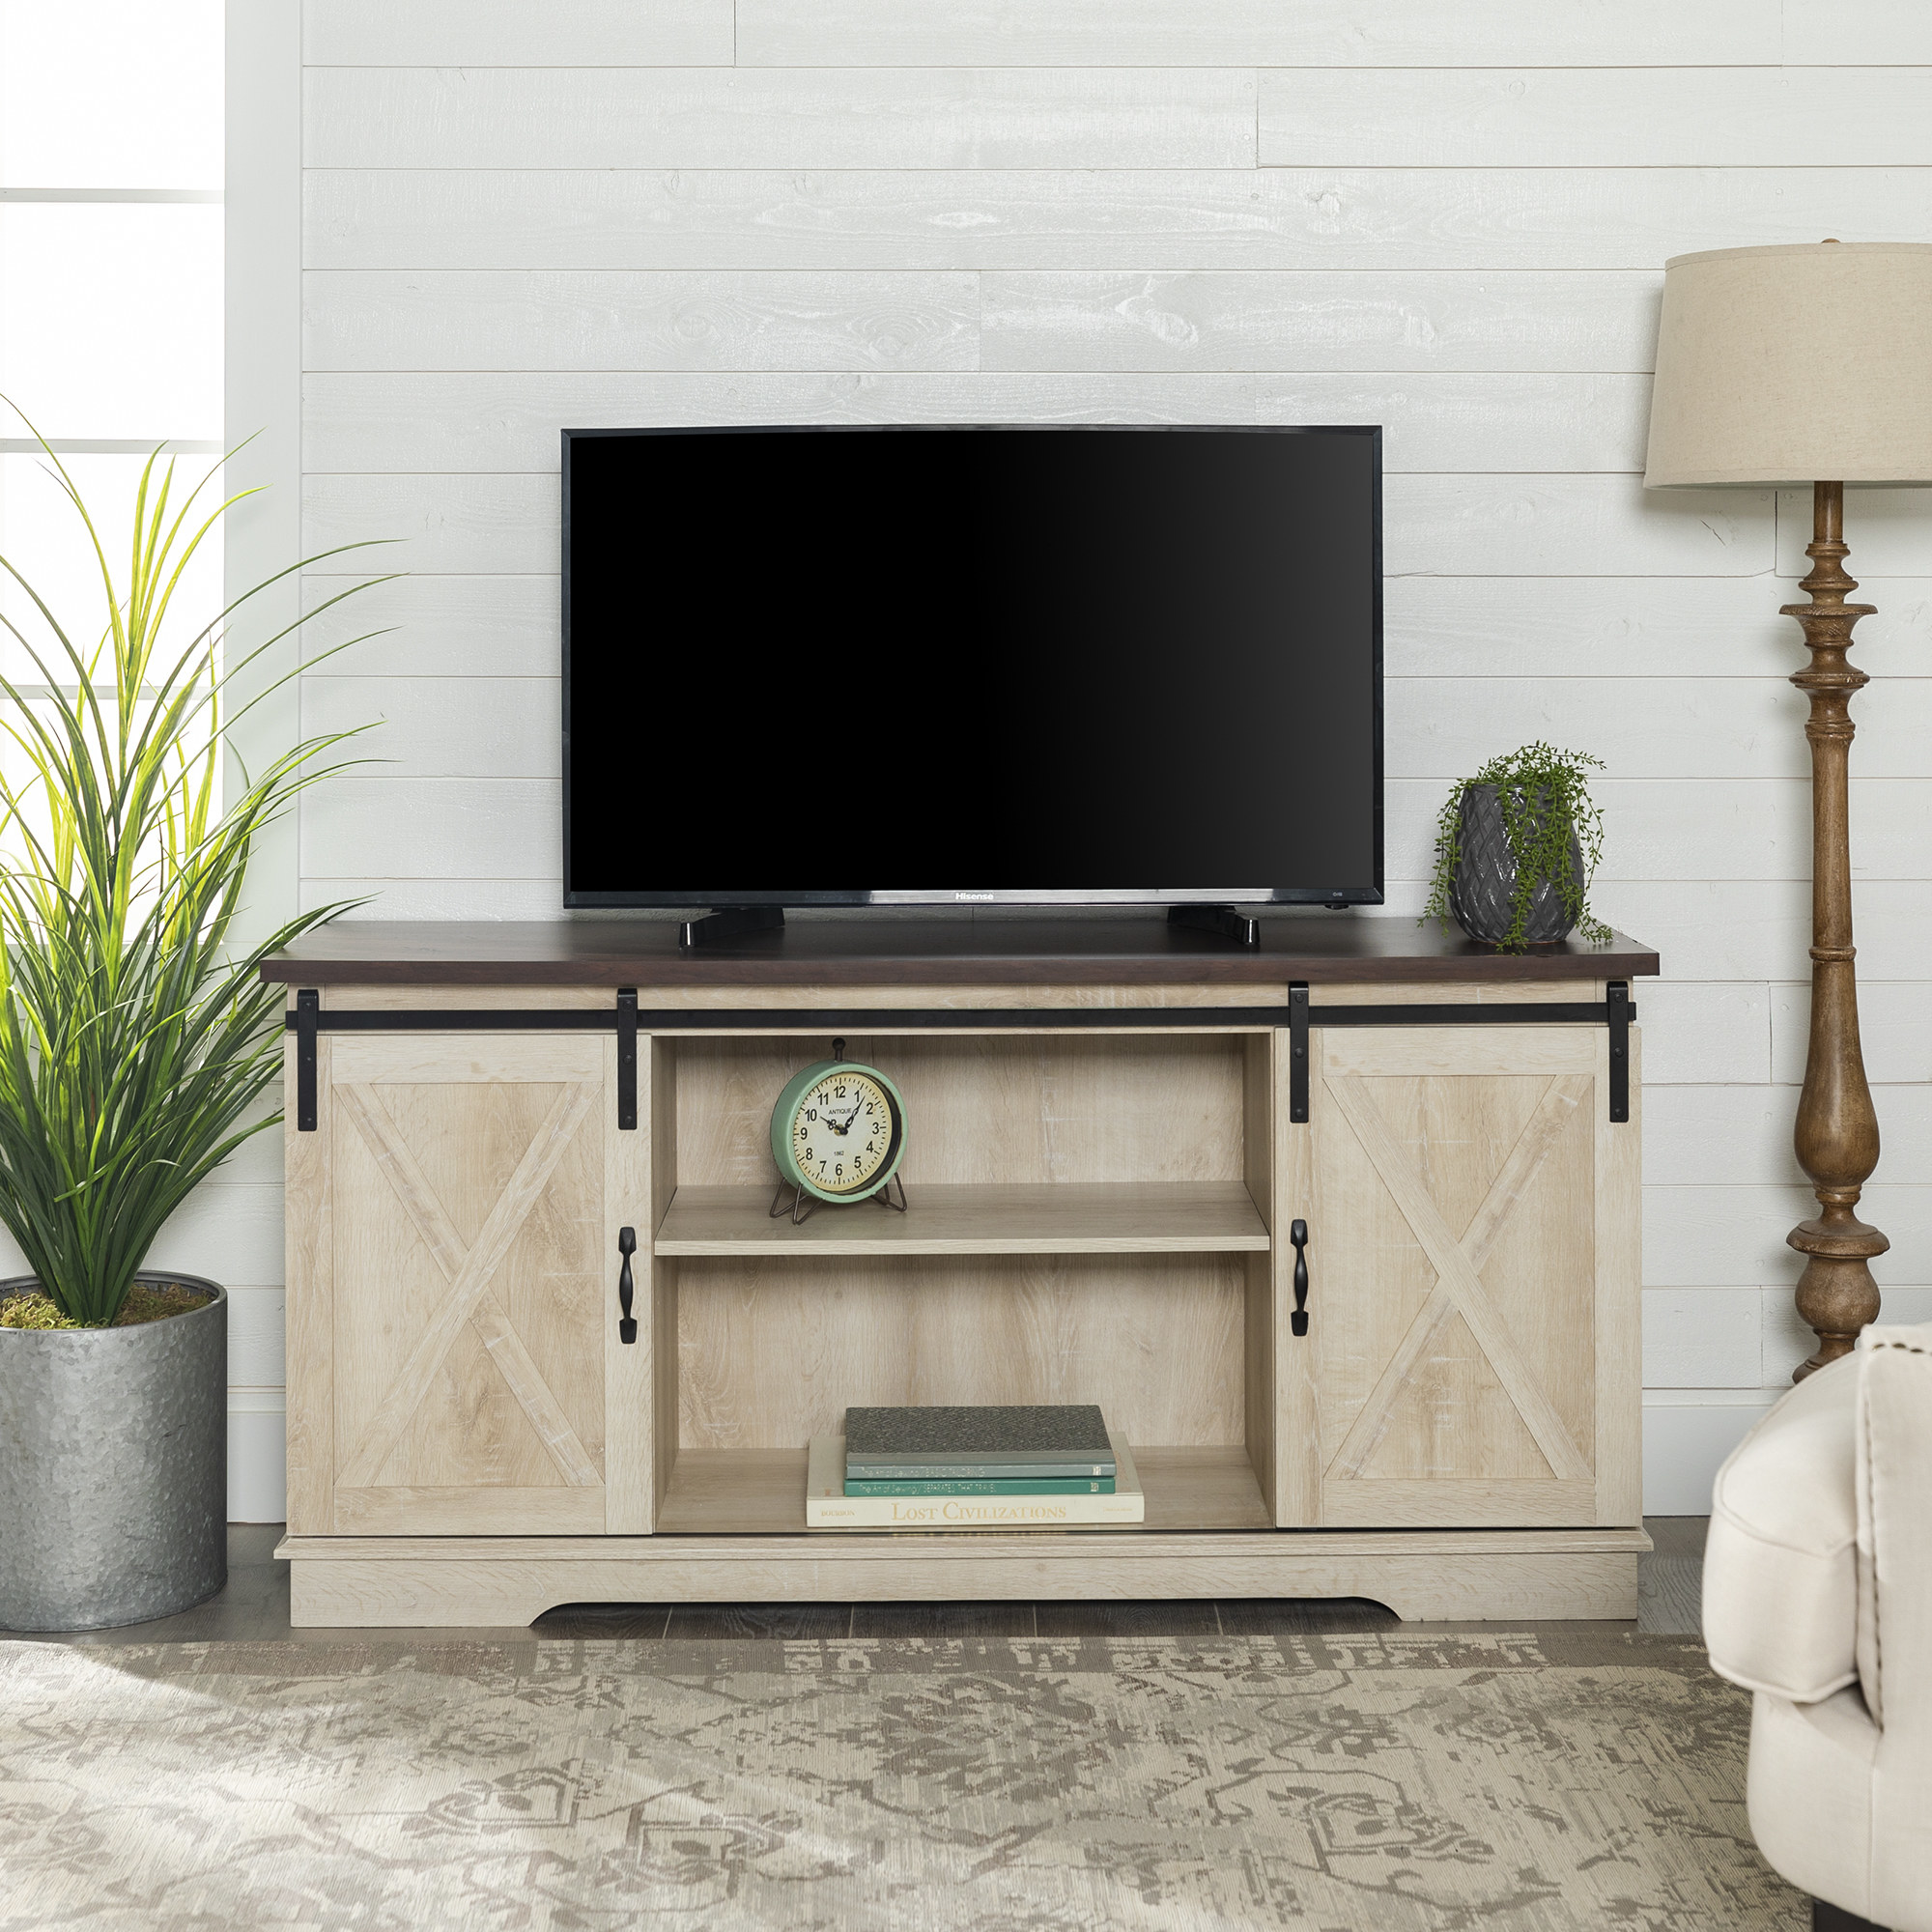 A brown and white oak televisions stand with two cabinets and shelf space in the middle